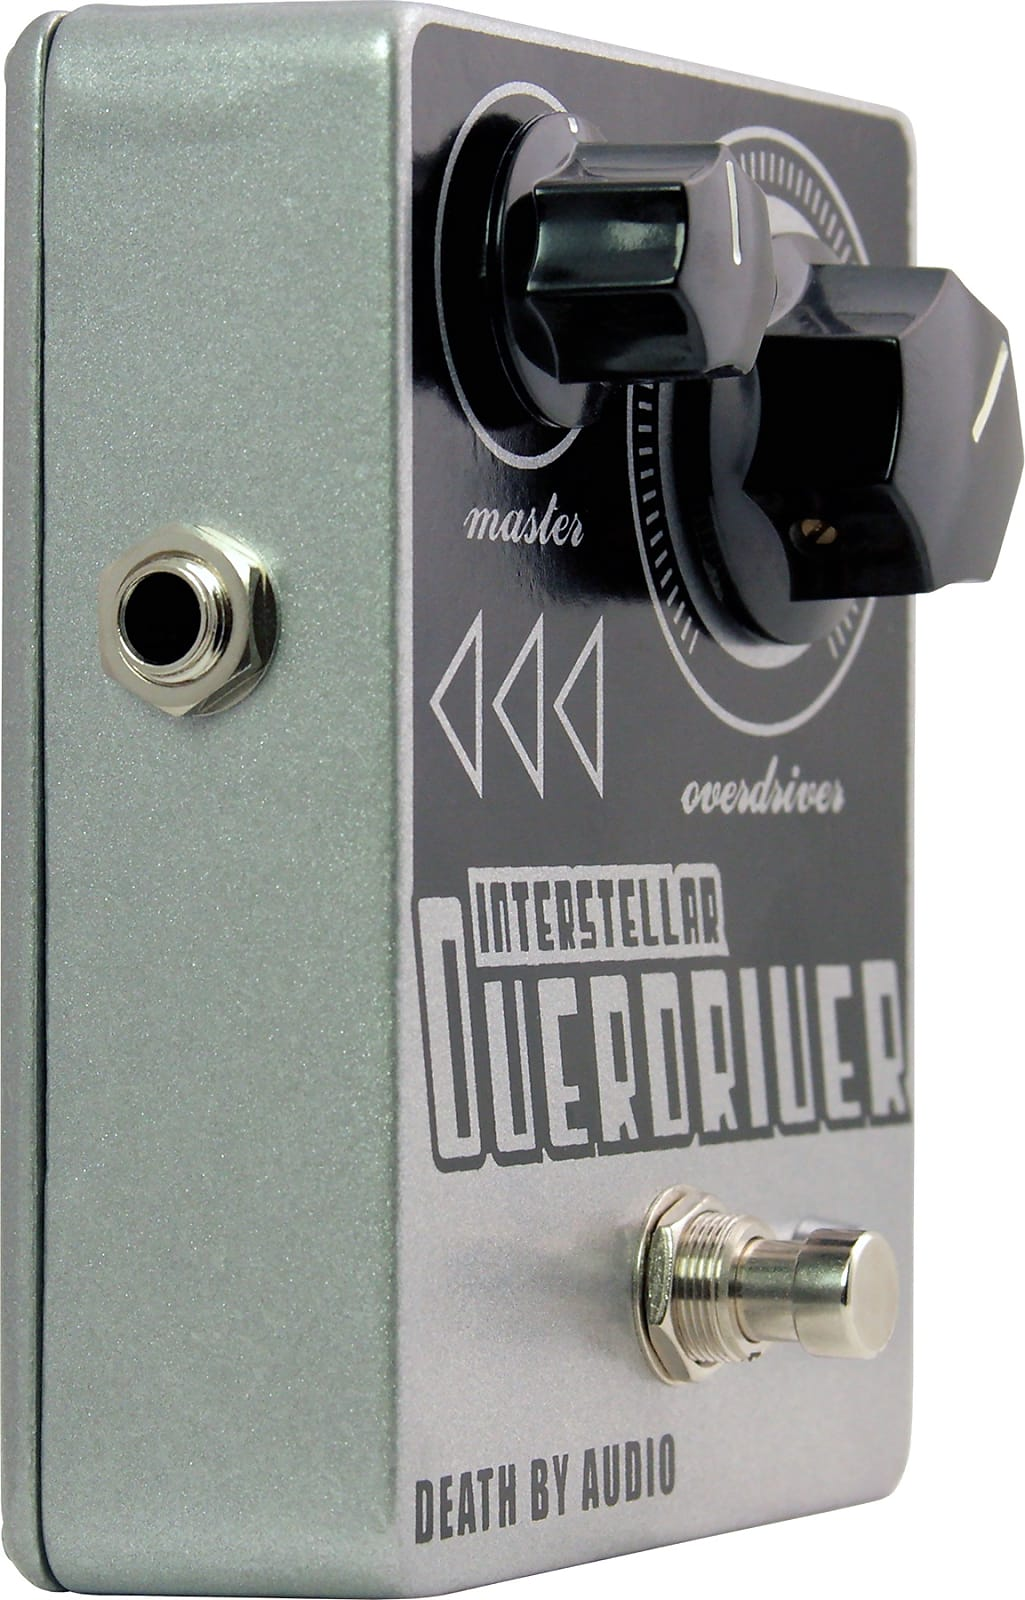 Death By Audio DBA Interstellar Overdriver Overdrive Effects Pedal